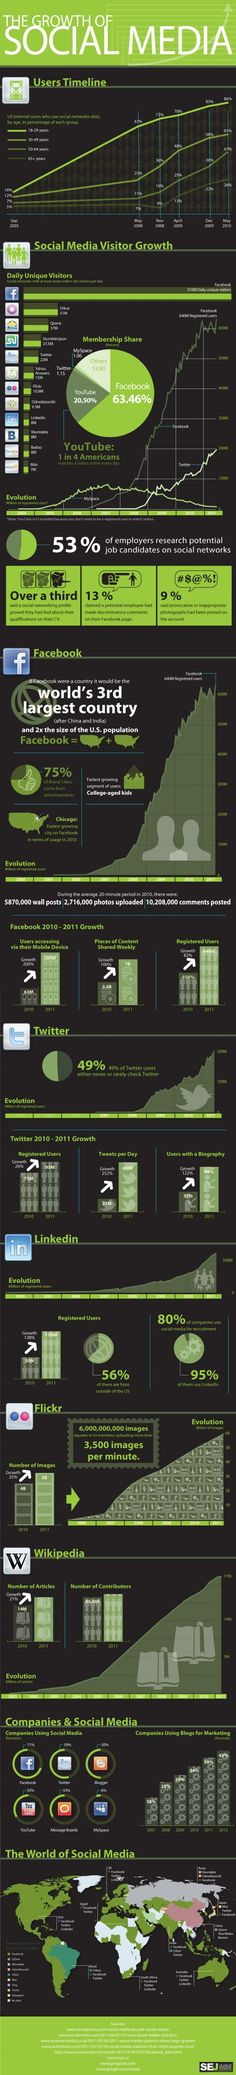 The growth of social media infograph